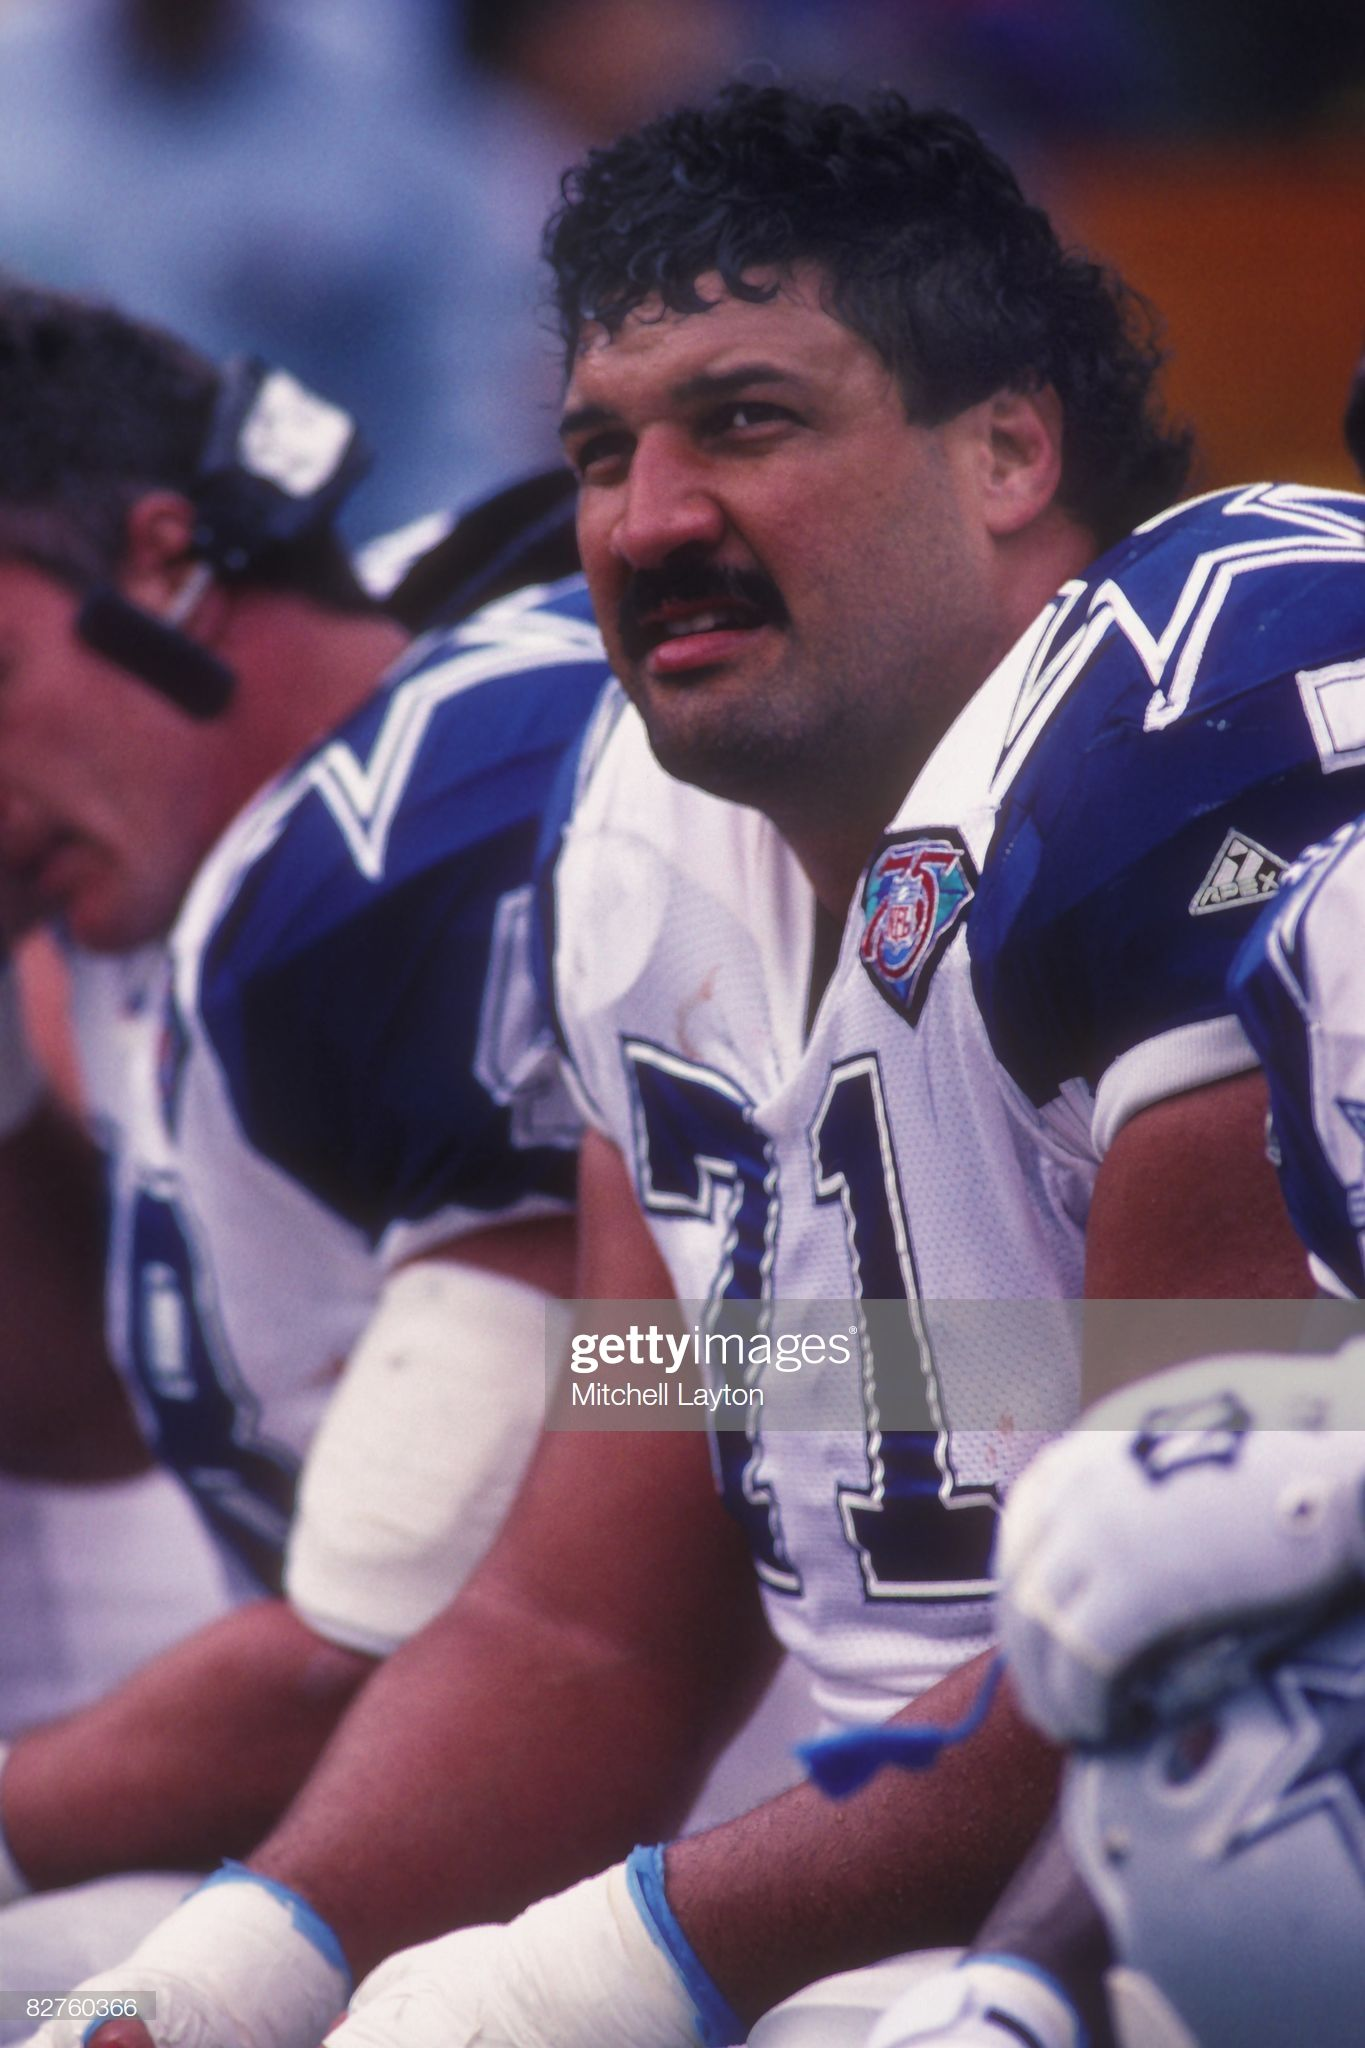 Mark Tuinei61 of the Dallas Cowboys during a NFL football